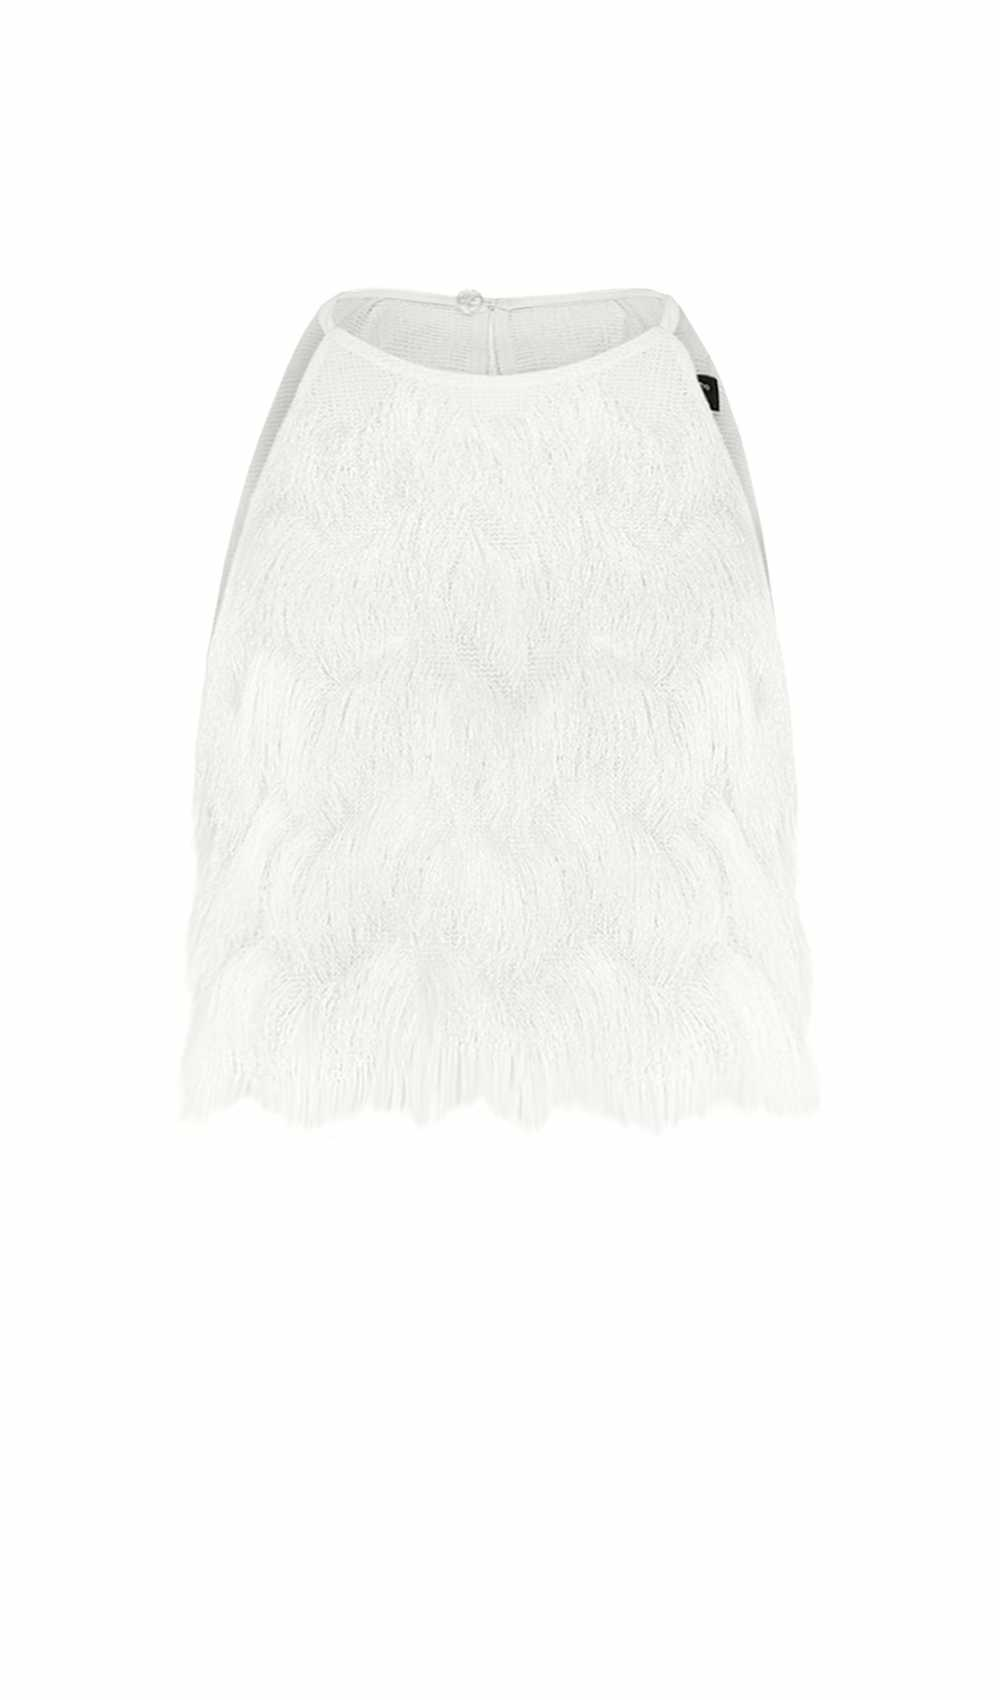 Ivory high necked top with fringes